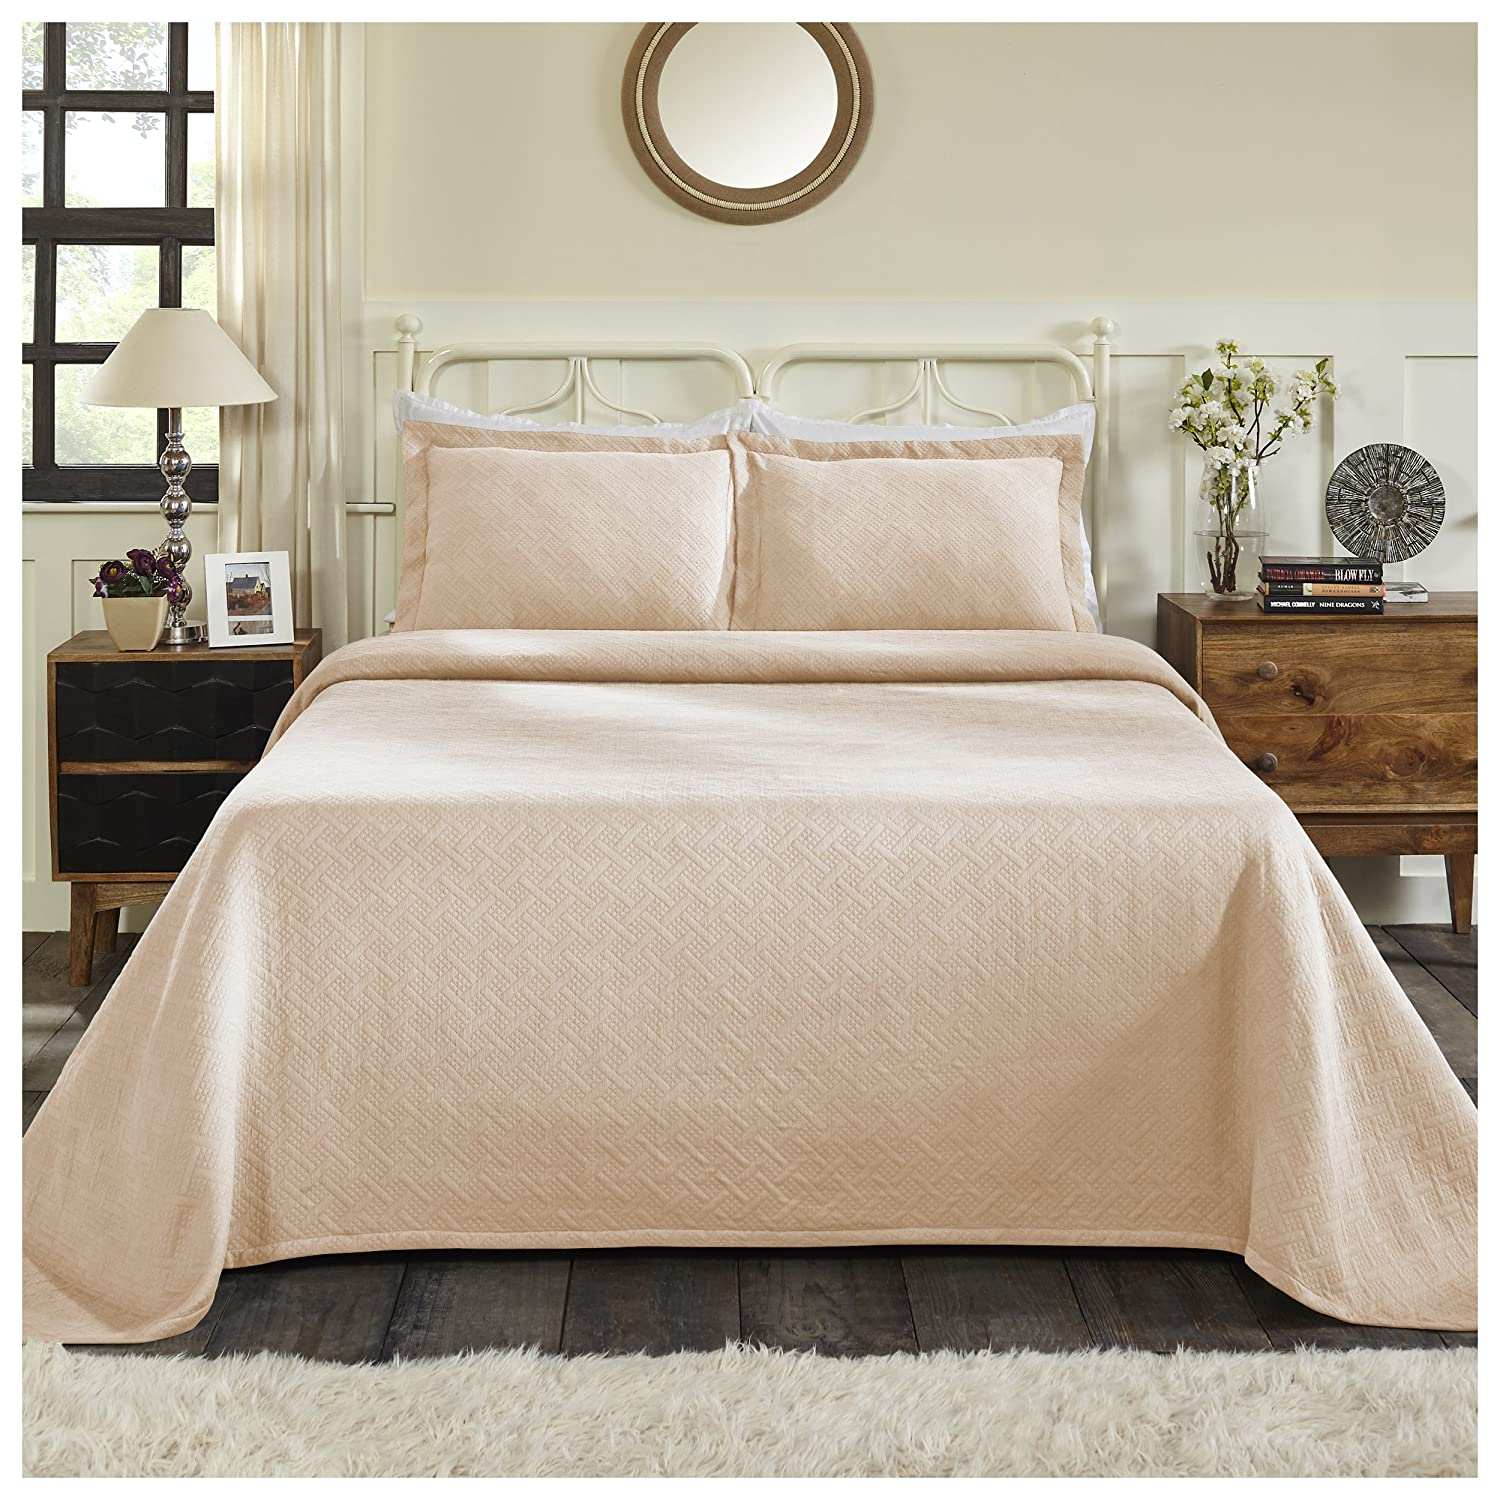 Peach Full Superior 100% Cotton Basket Weave Bedspread with Shams, All-Season Premium Cotton Matelassé Jacquard Bedding, Quilted-look Geometric Basket Pattern - King, White